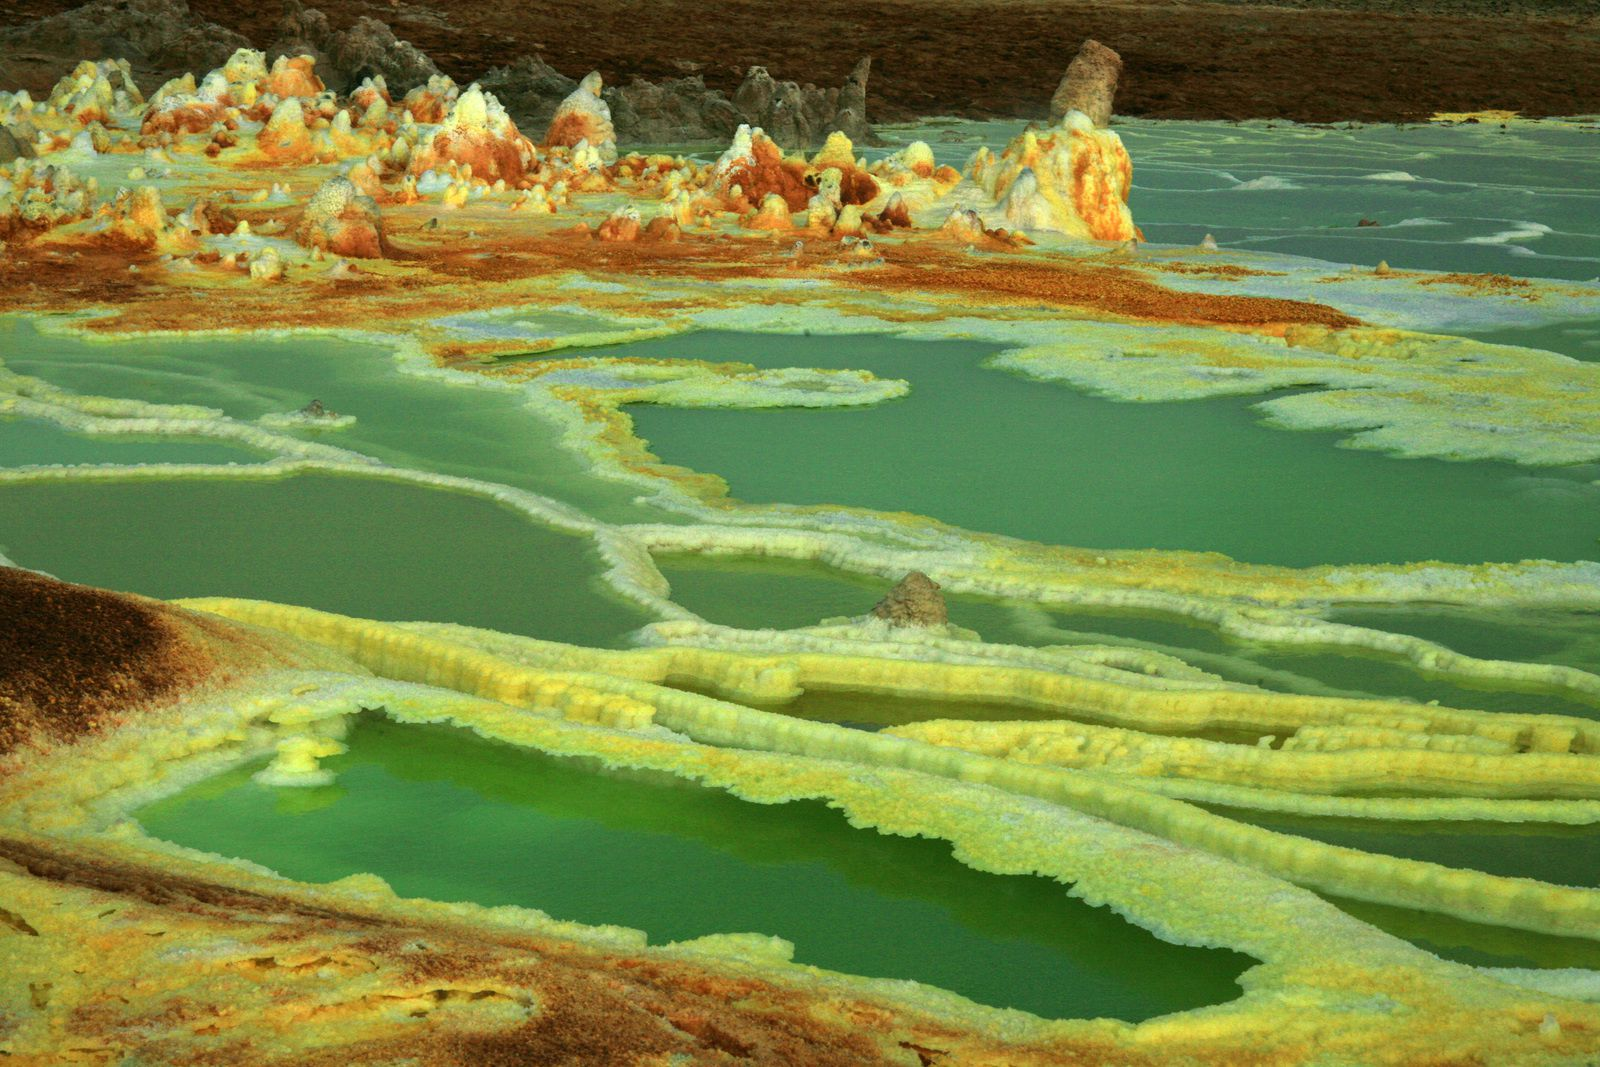 Dallol and its basins with acidic waters hemmed with salt and sulfur - photo © Bernard Duyck 2007